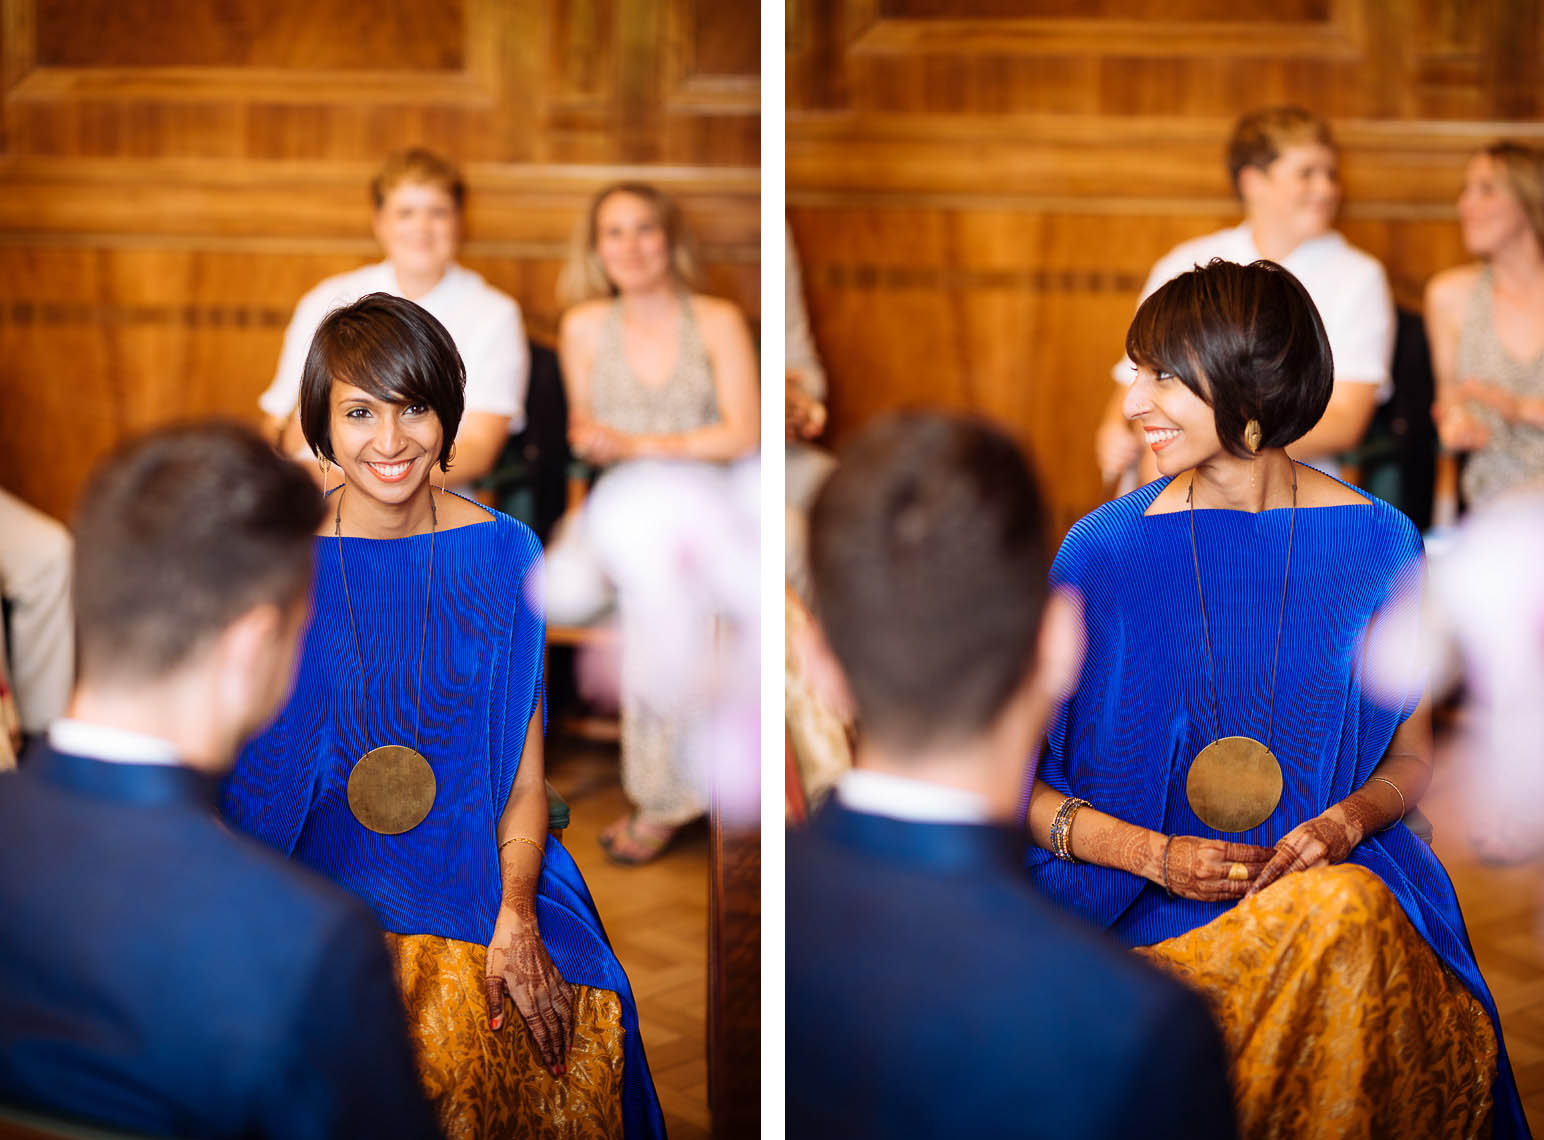 pooja-dan-hackney-town-hall-london-fusion-wedding-photography-05a